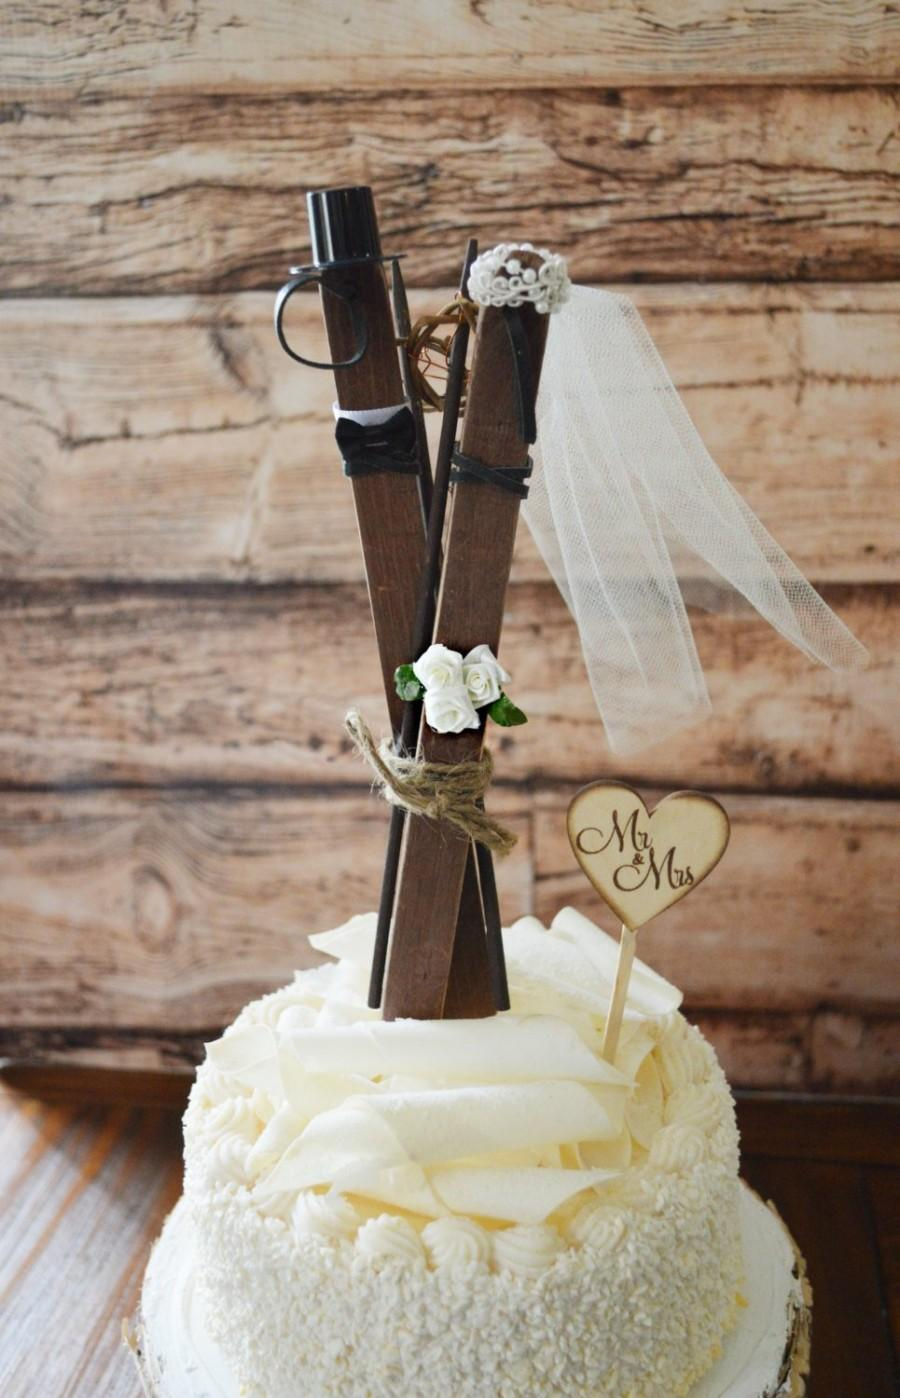 زفاف - Ski wedding cake topper skis winter themed bride and groom cake topper rustic skis sled sleigh lodge ivory veil Mr and Mrs sign bouquet